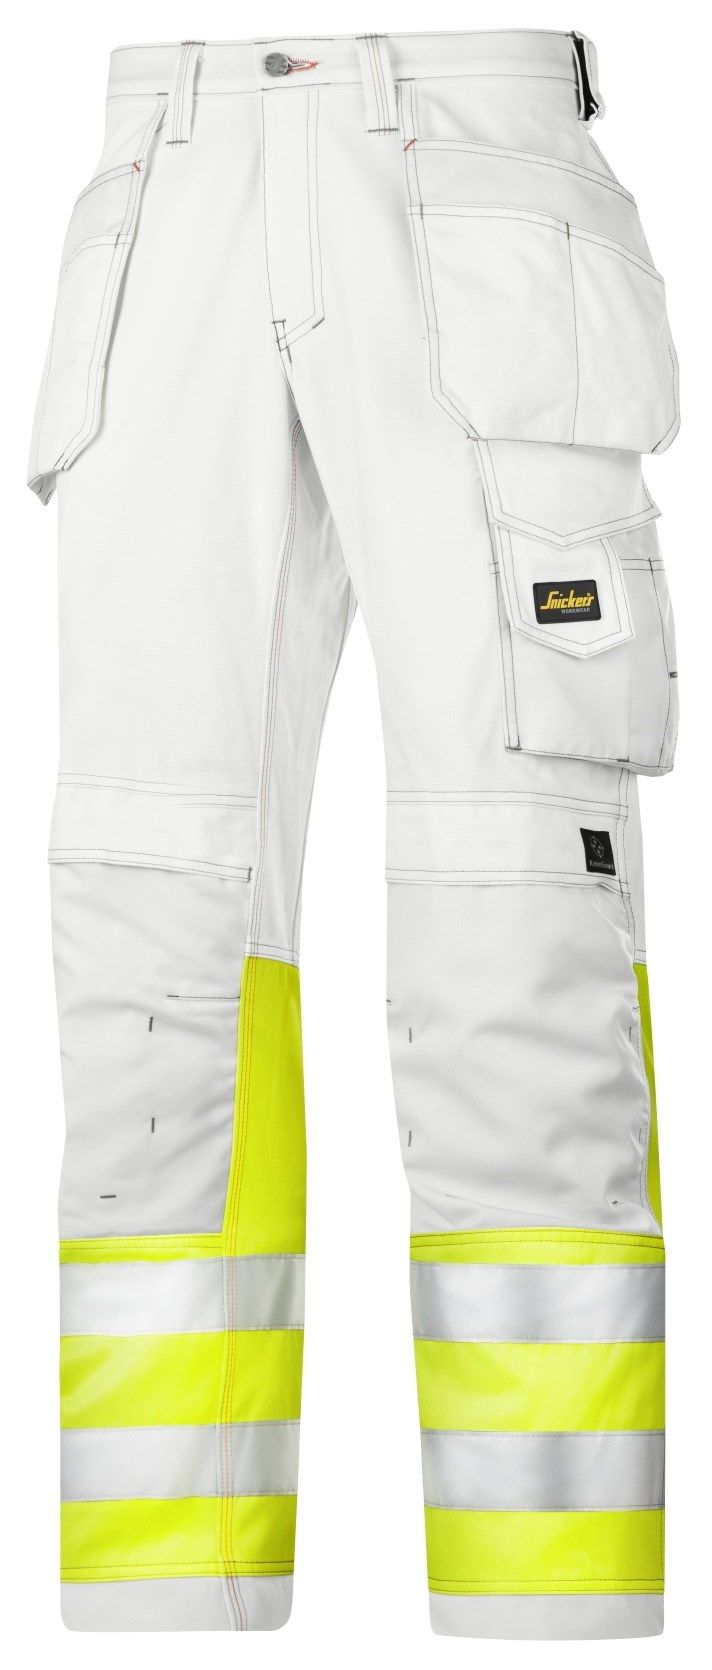 Snickers 3234 Painters Hi-Vis Trousers Class 1 White